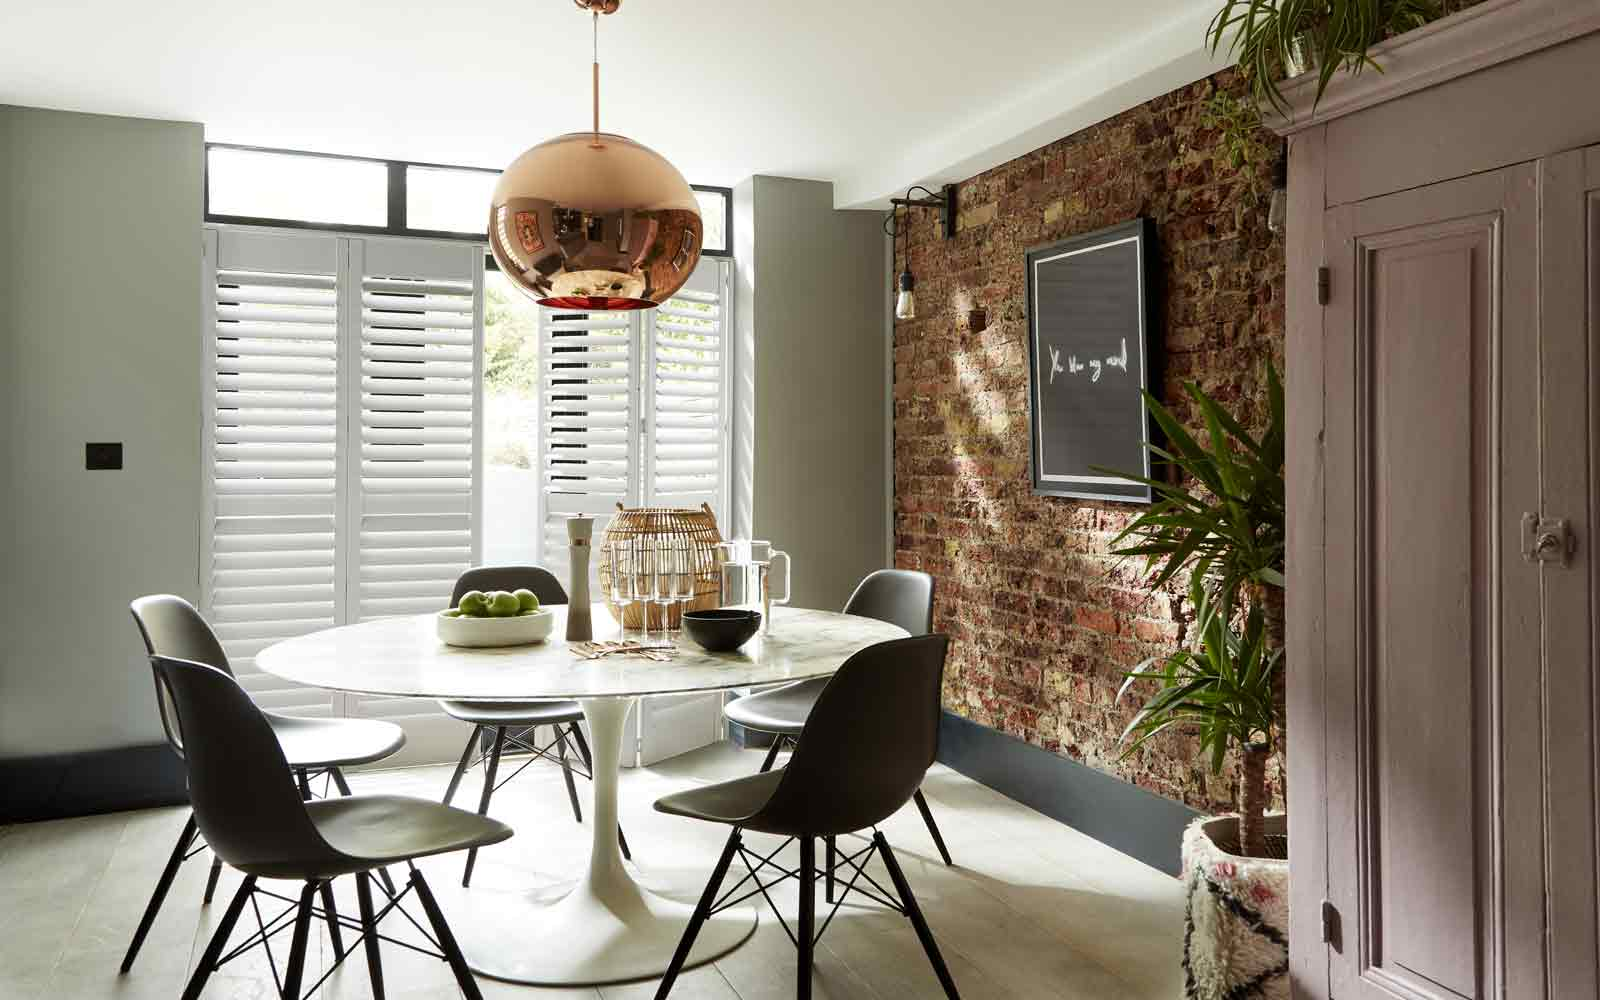 Bi-Fold Shutters Tracked Doors in a Dining Room